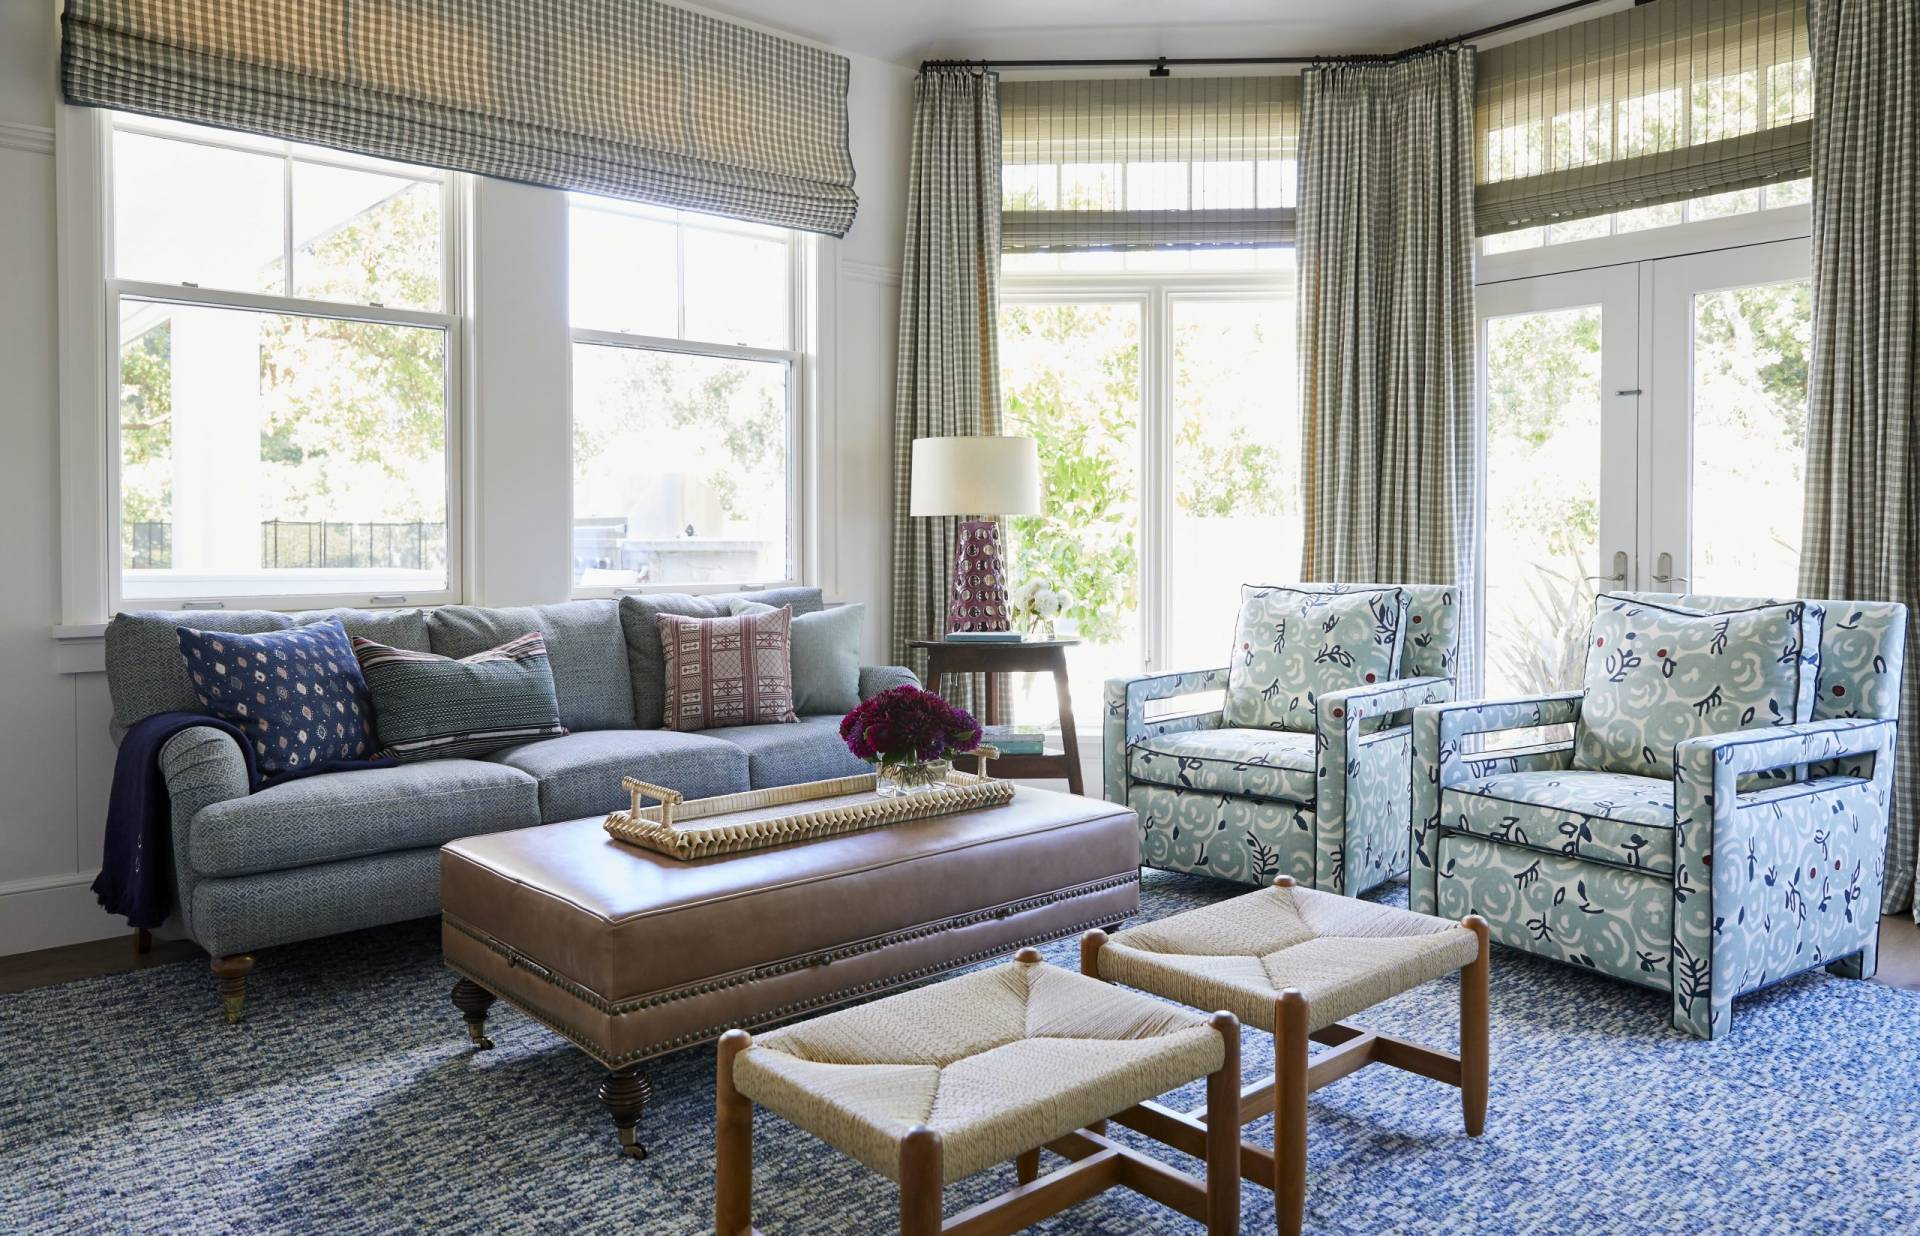 Wide view of living room with herringbone sofa, paisley sitting chairs, checkered drapes, and woven wood shades